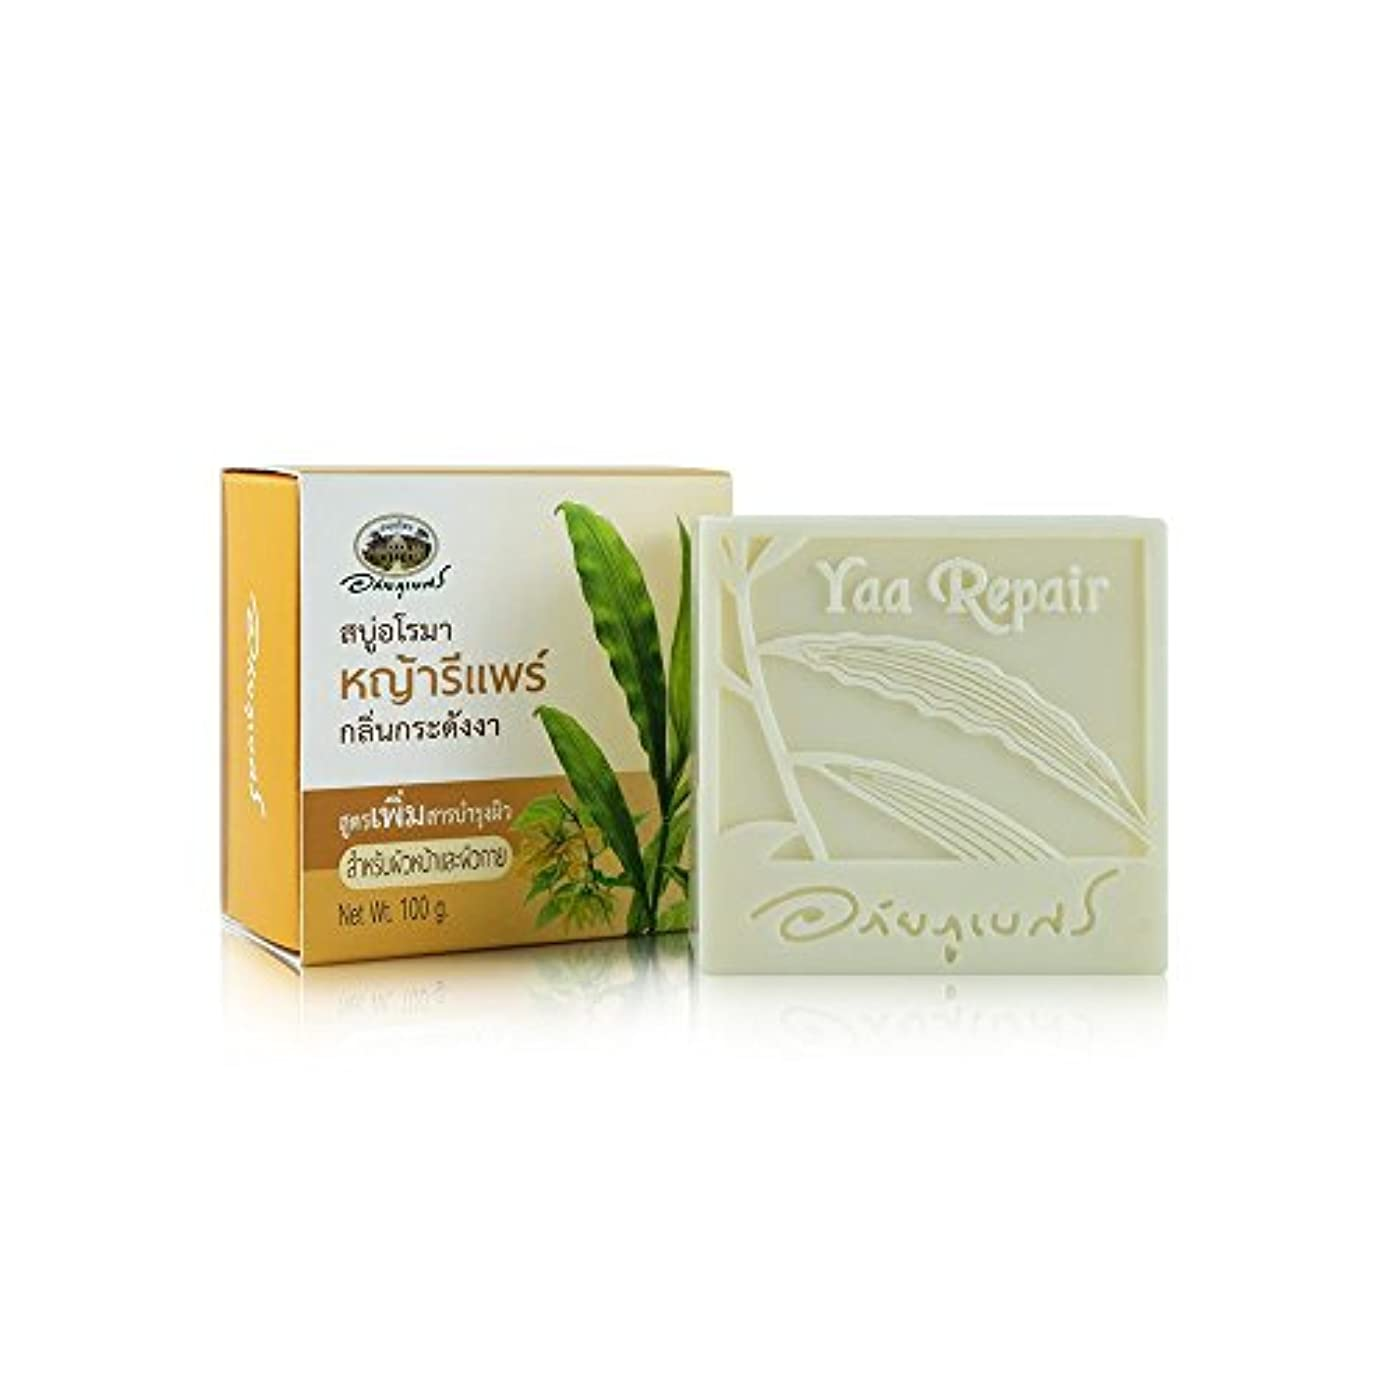 ゴミ箱を空にする船上レベルAbhaibhubejhr Thai Aromatherapy With Ylang Ylang Skin Care Formula Herbal Body Face Cleaning Soap 100g.